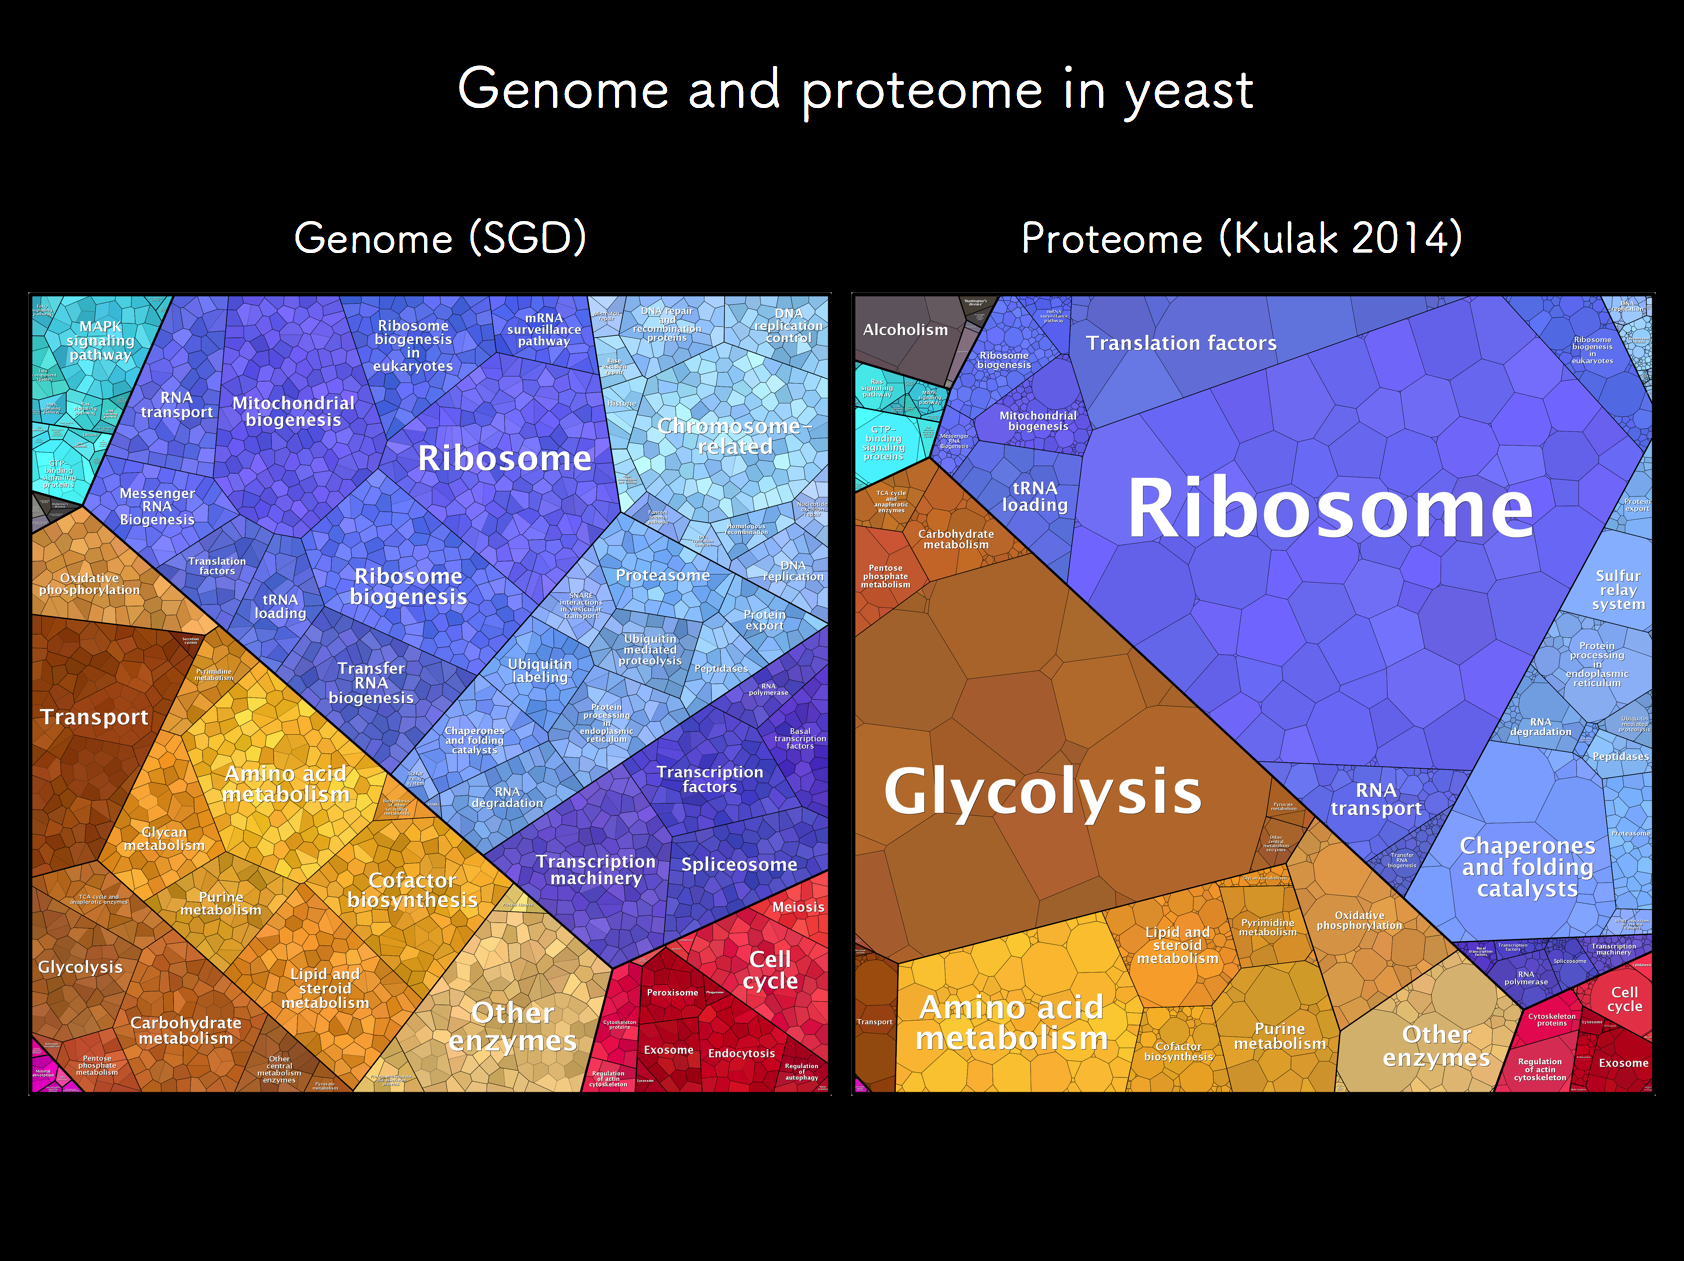 Yeast genome and proteome